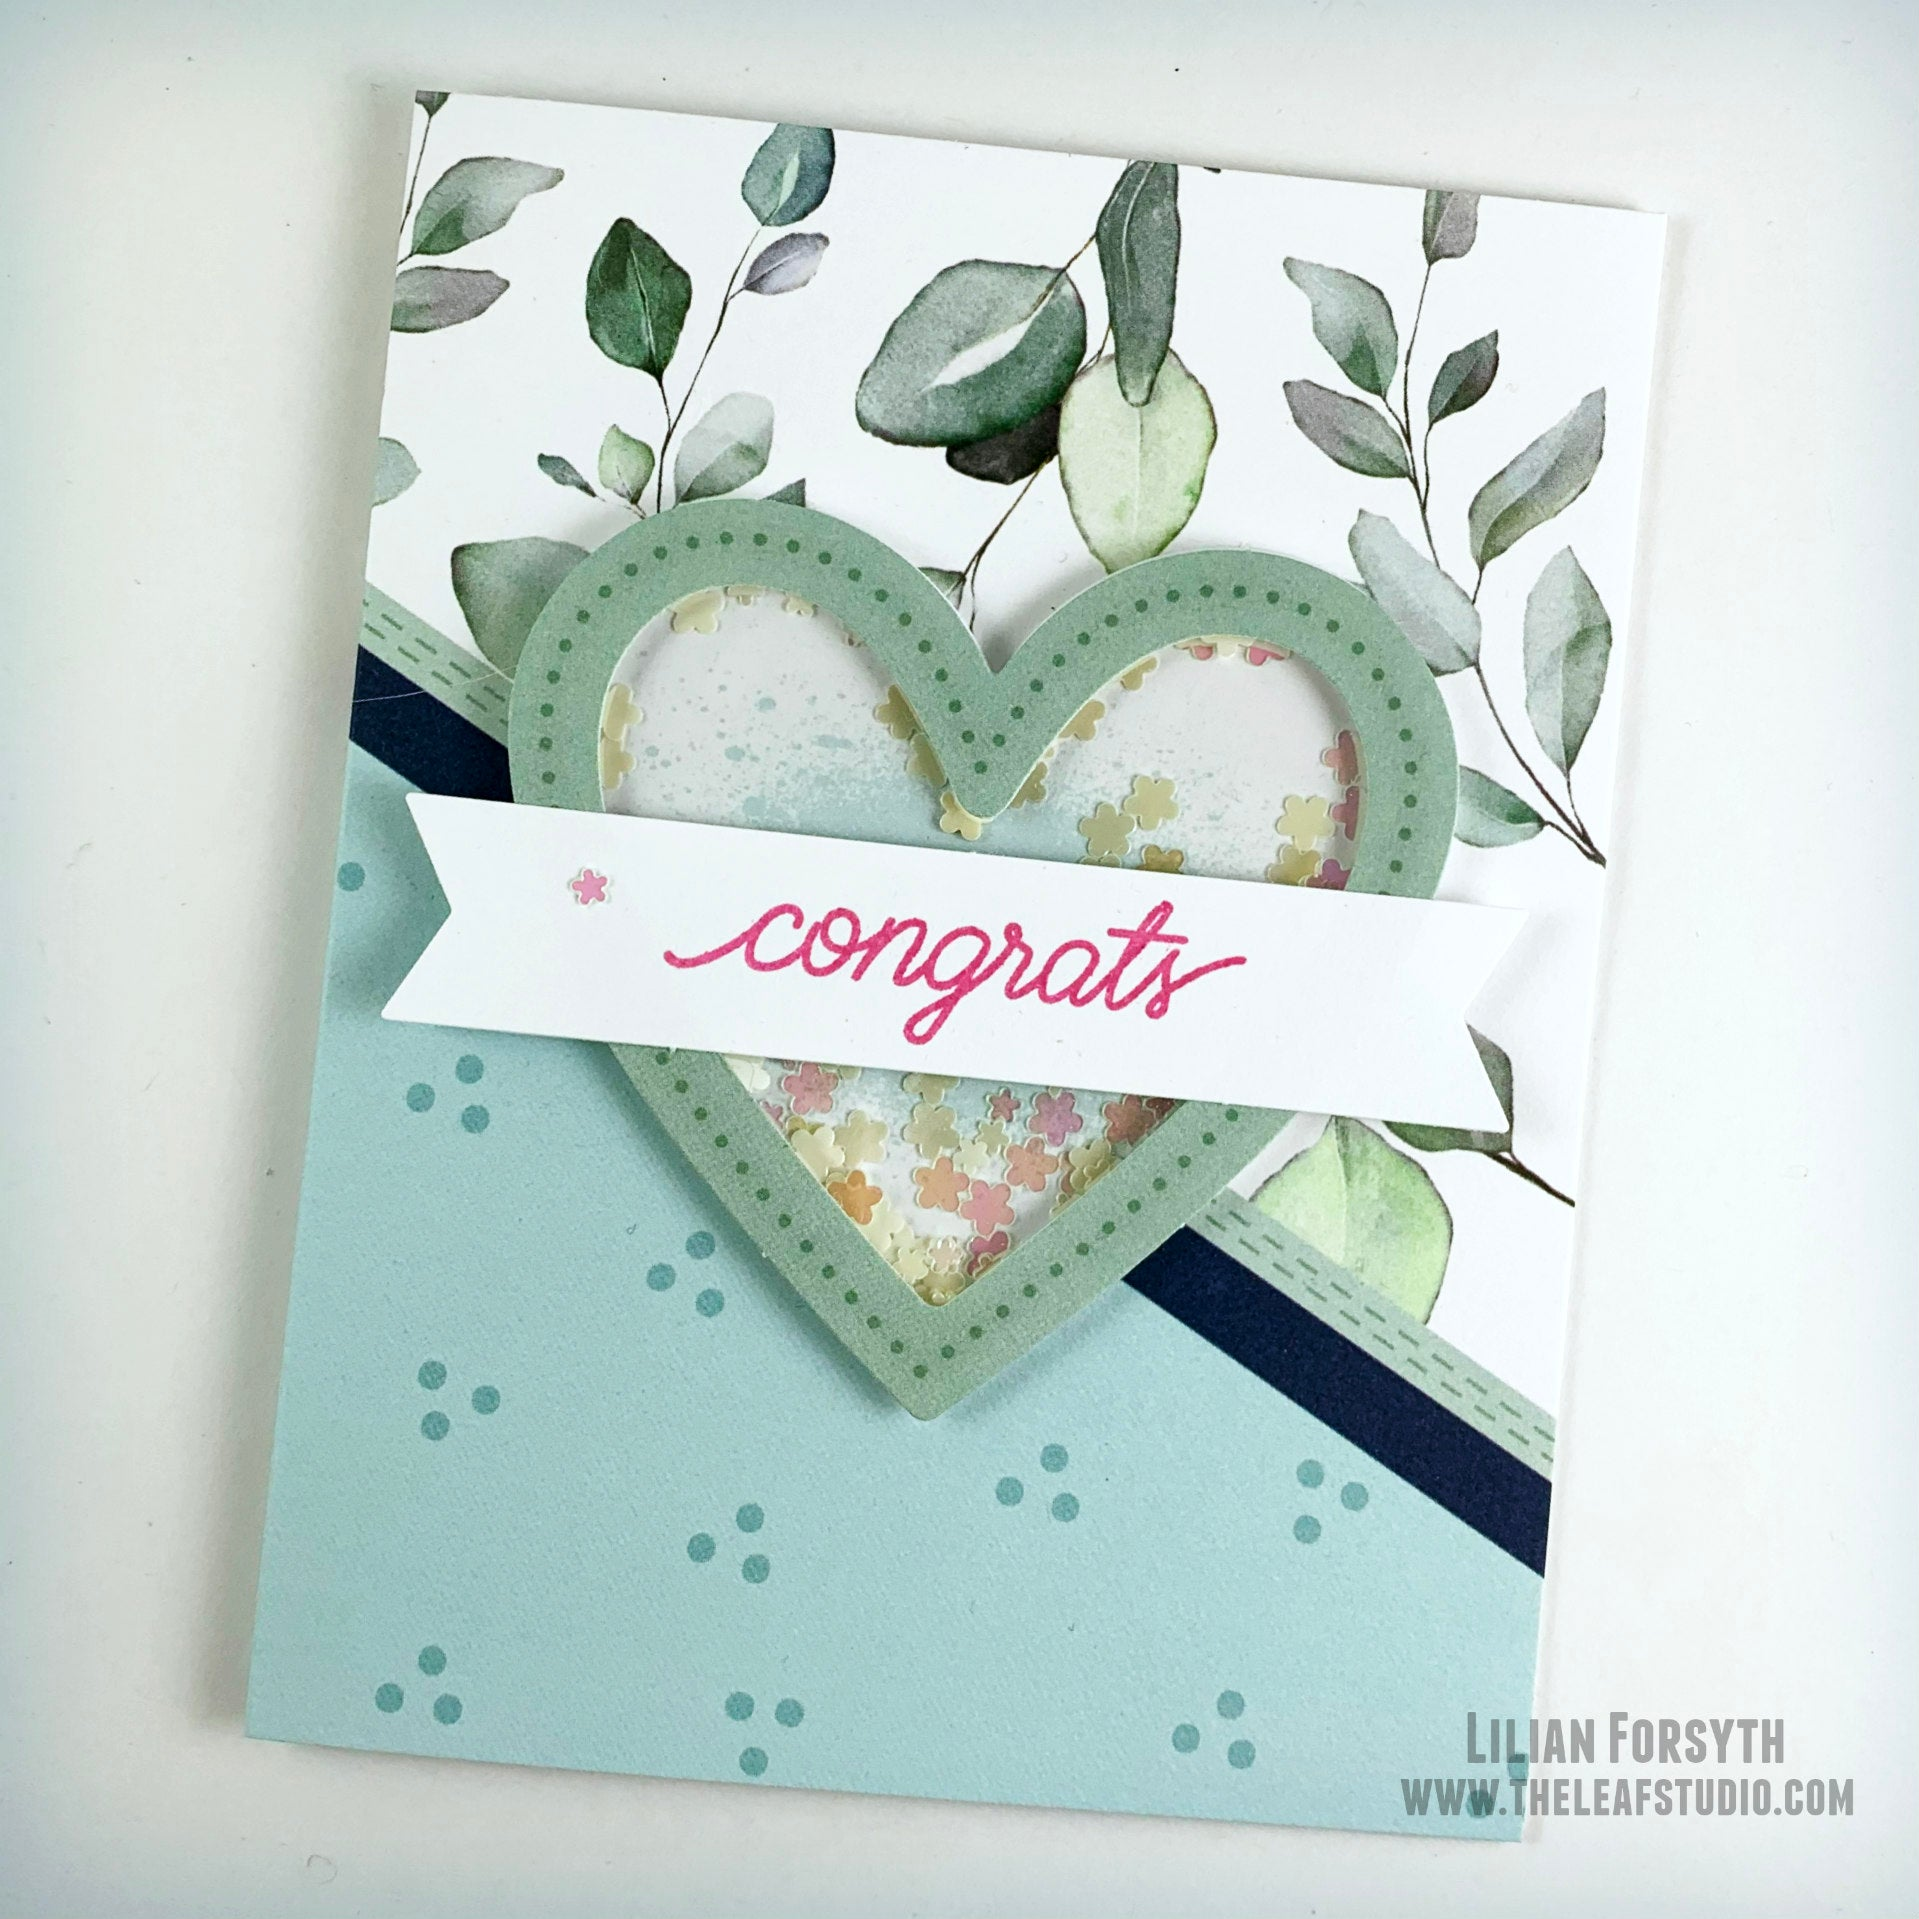 Operation Smile Fundraiser -  Congrats Heart Shaker Card